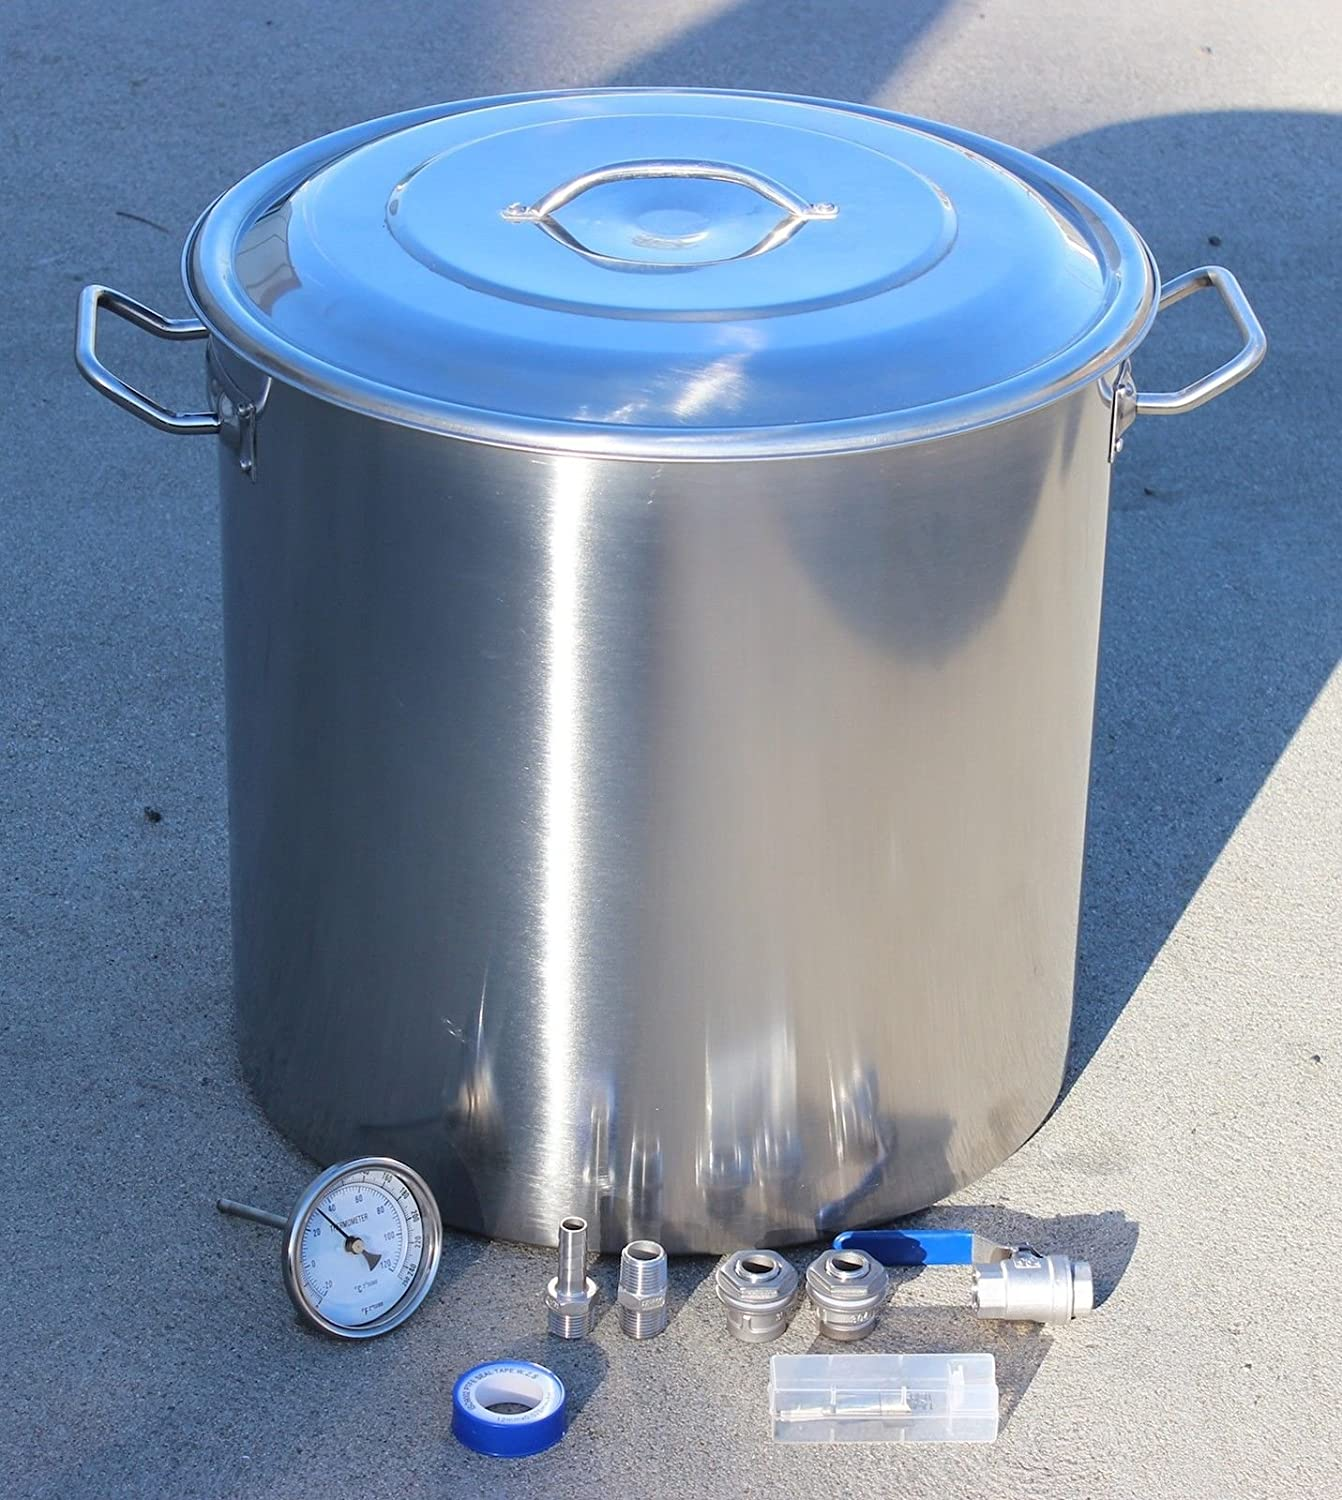 Concord Home Brew Kettle DIY Kit Stainless Steel Beer Stock Pot w/ Accessories (80 QT)